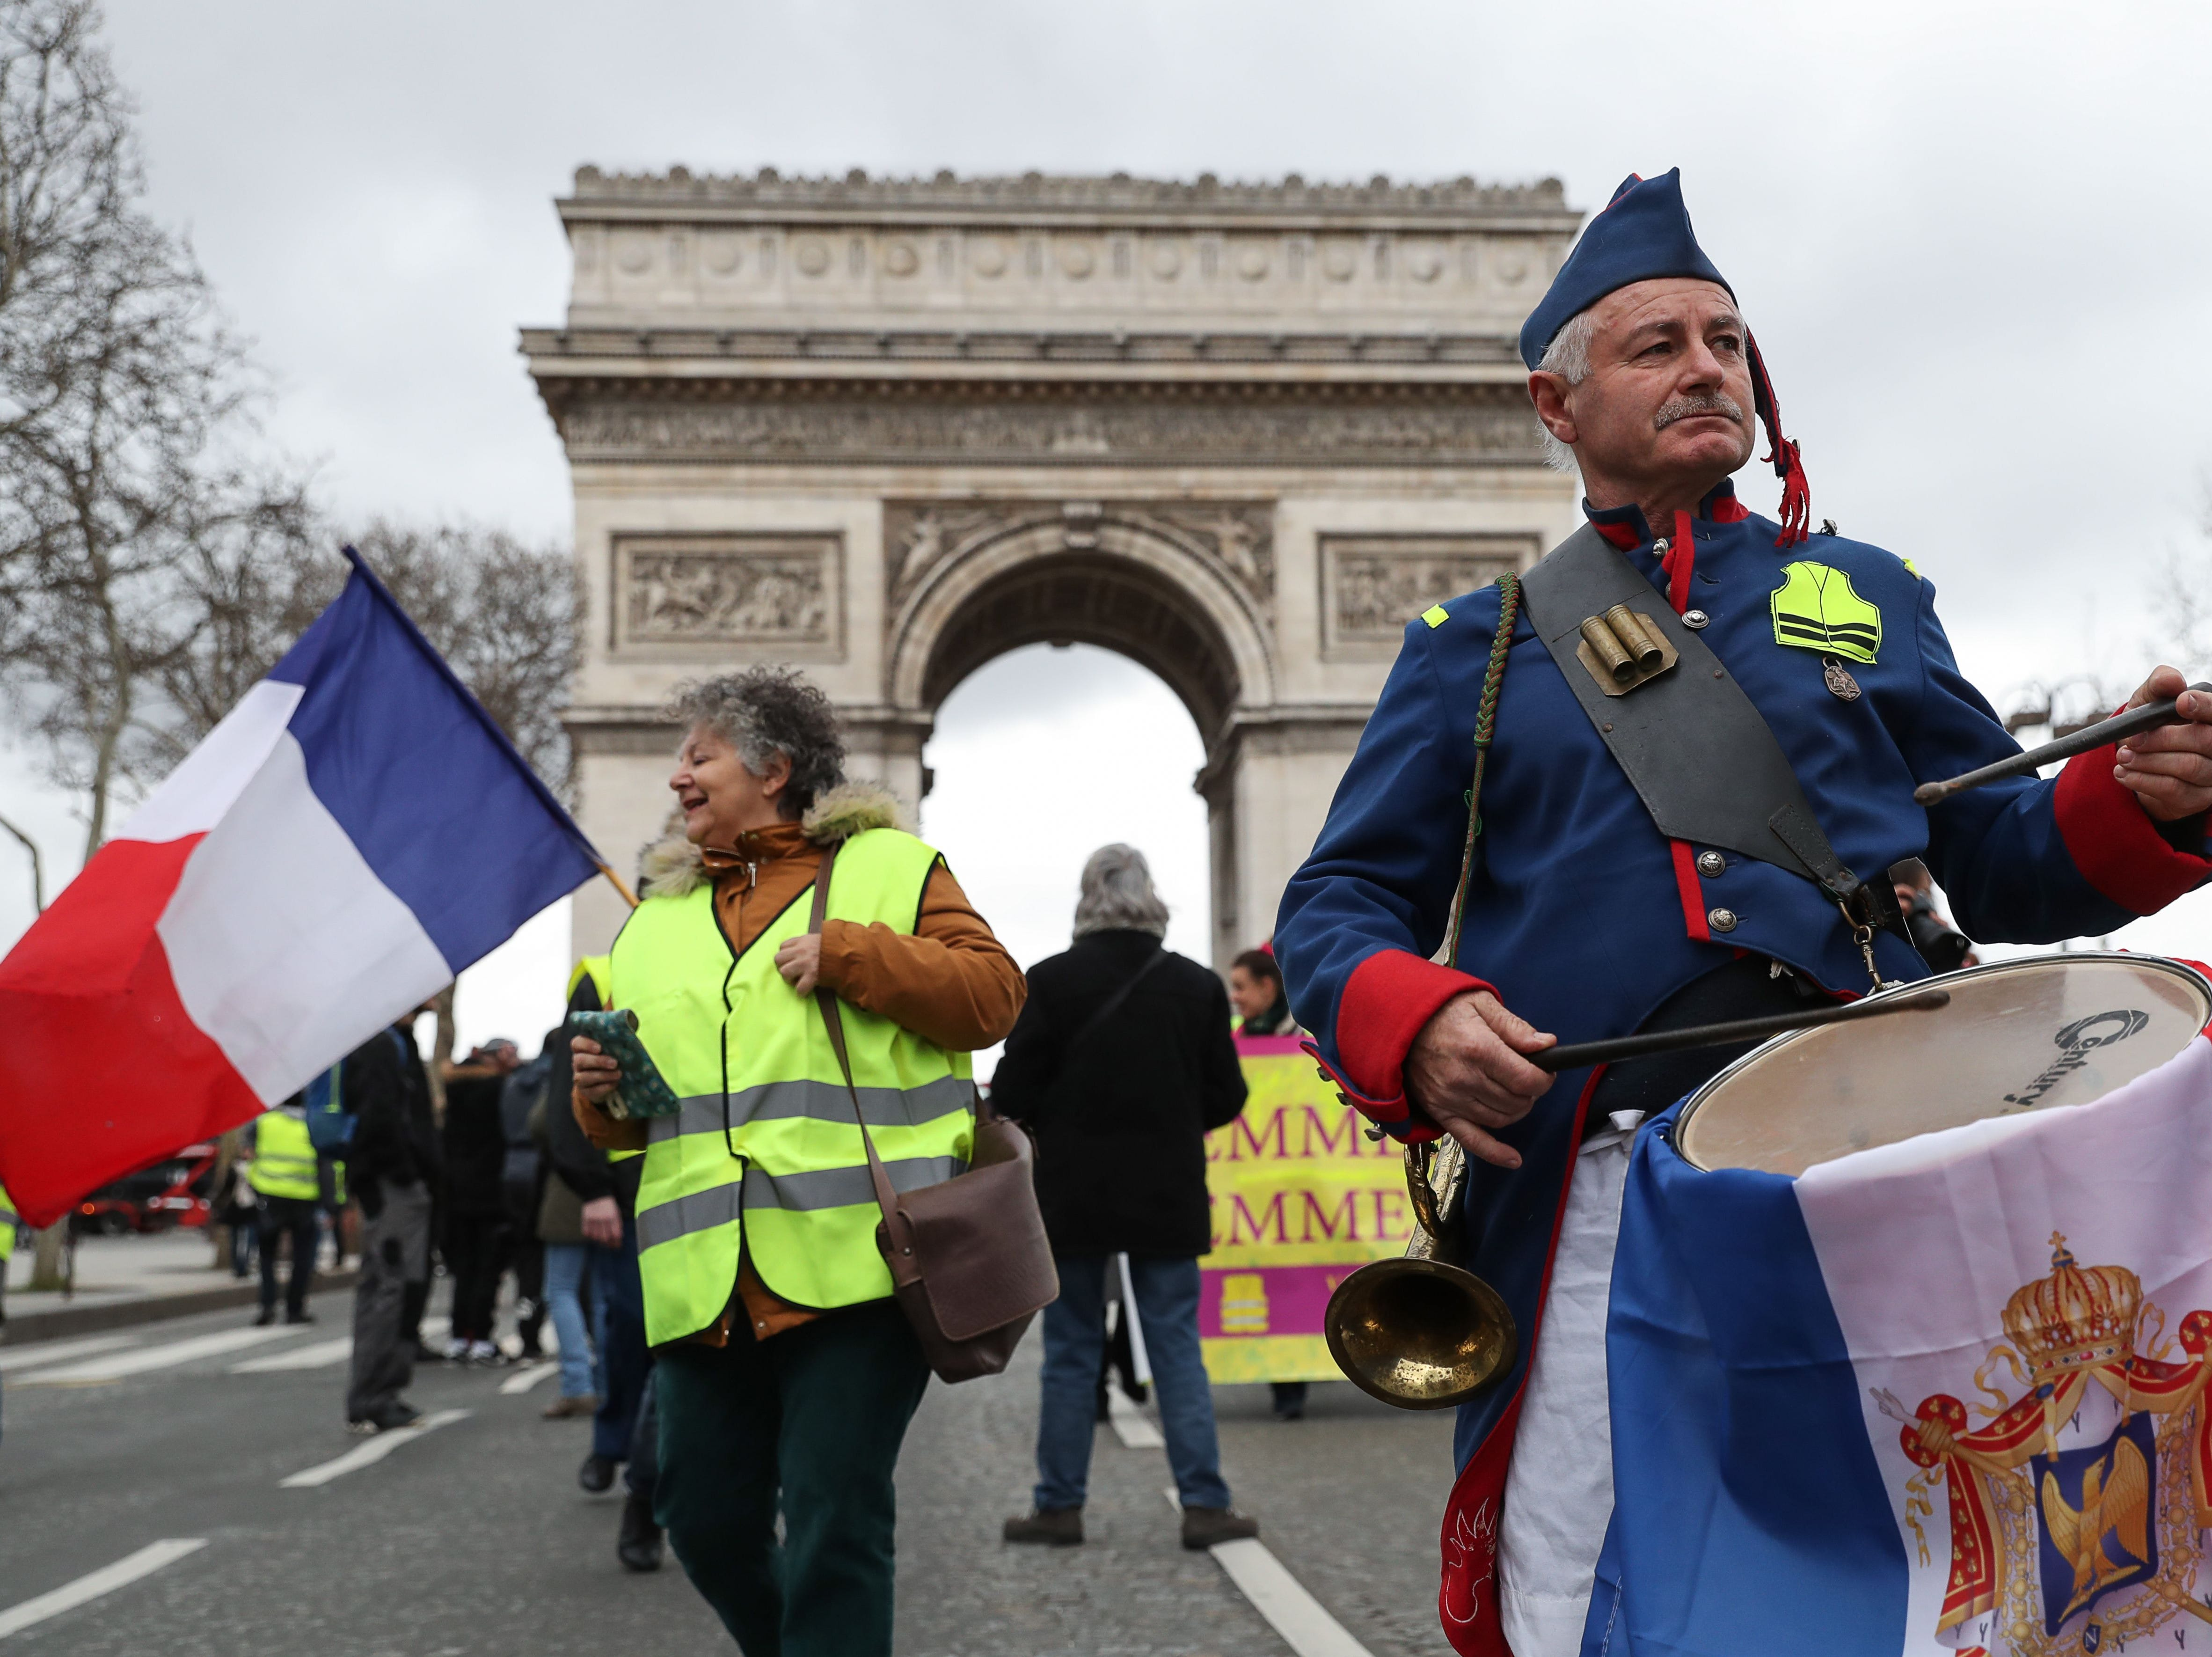 "A ""Yellow Vest"" (Gilet Jaune) protester wearing a uniform inspired by the Napelonic era plays a drum as he takes part in an anti-government demonstration in front of the Arc de triomphe in Paris, on March 9, 2019."